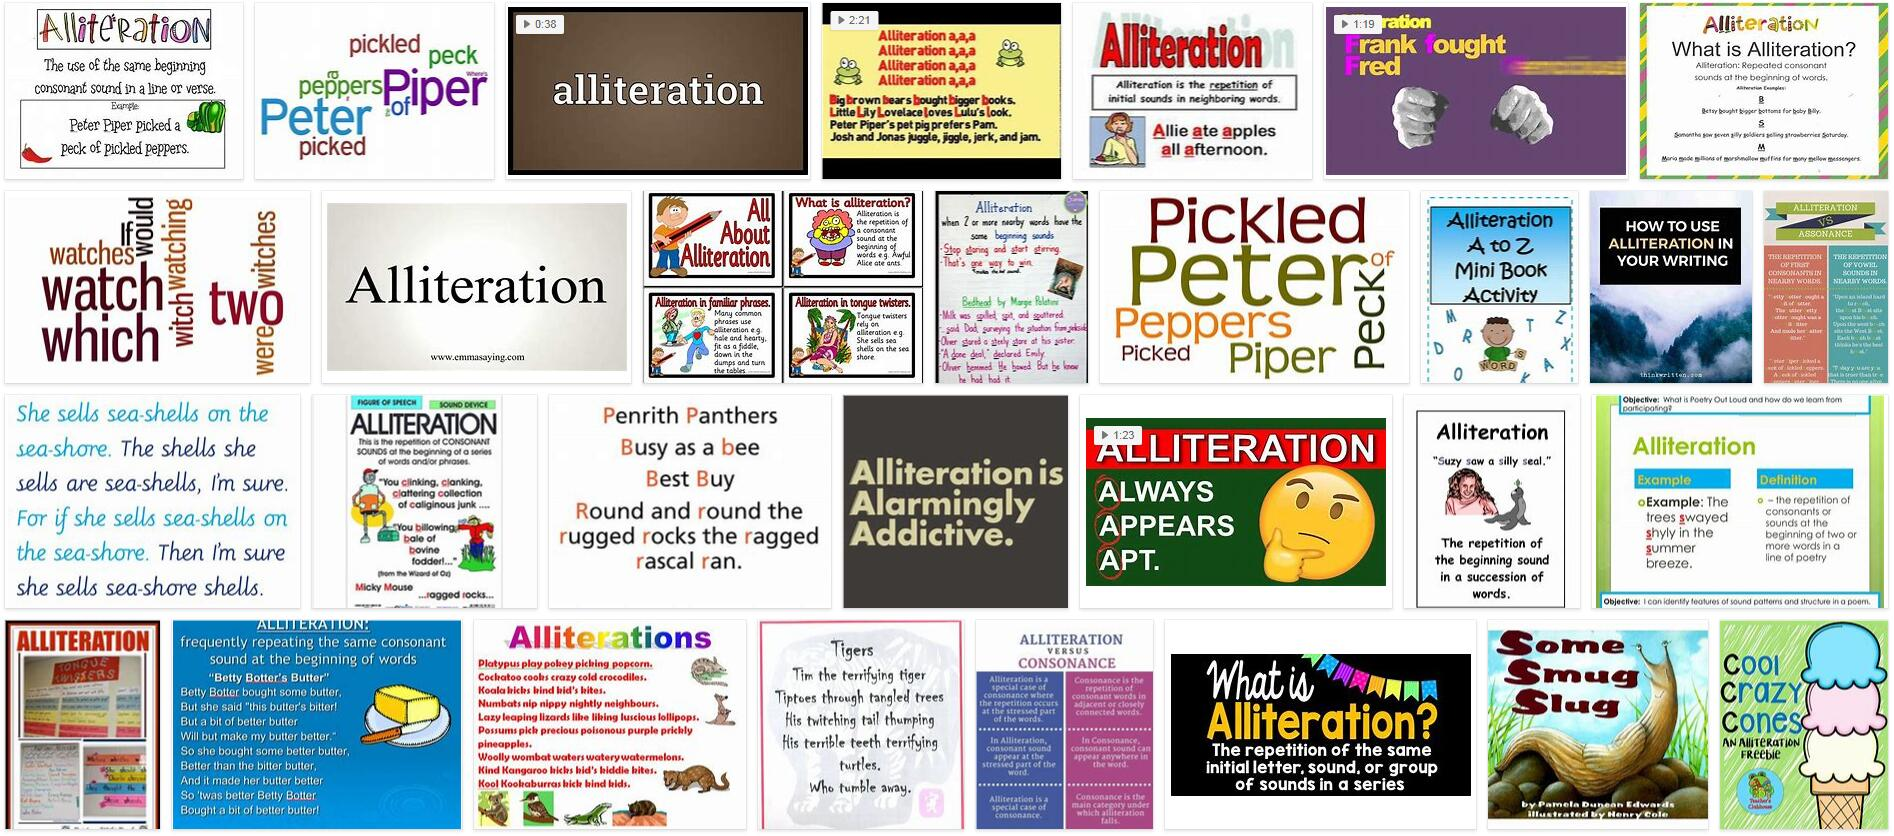 Meaning of Alliteration in English